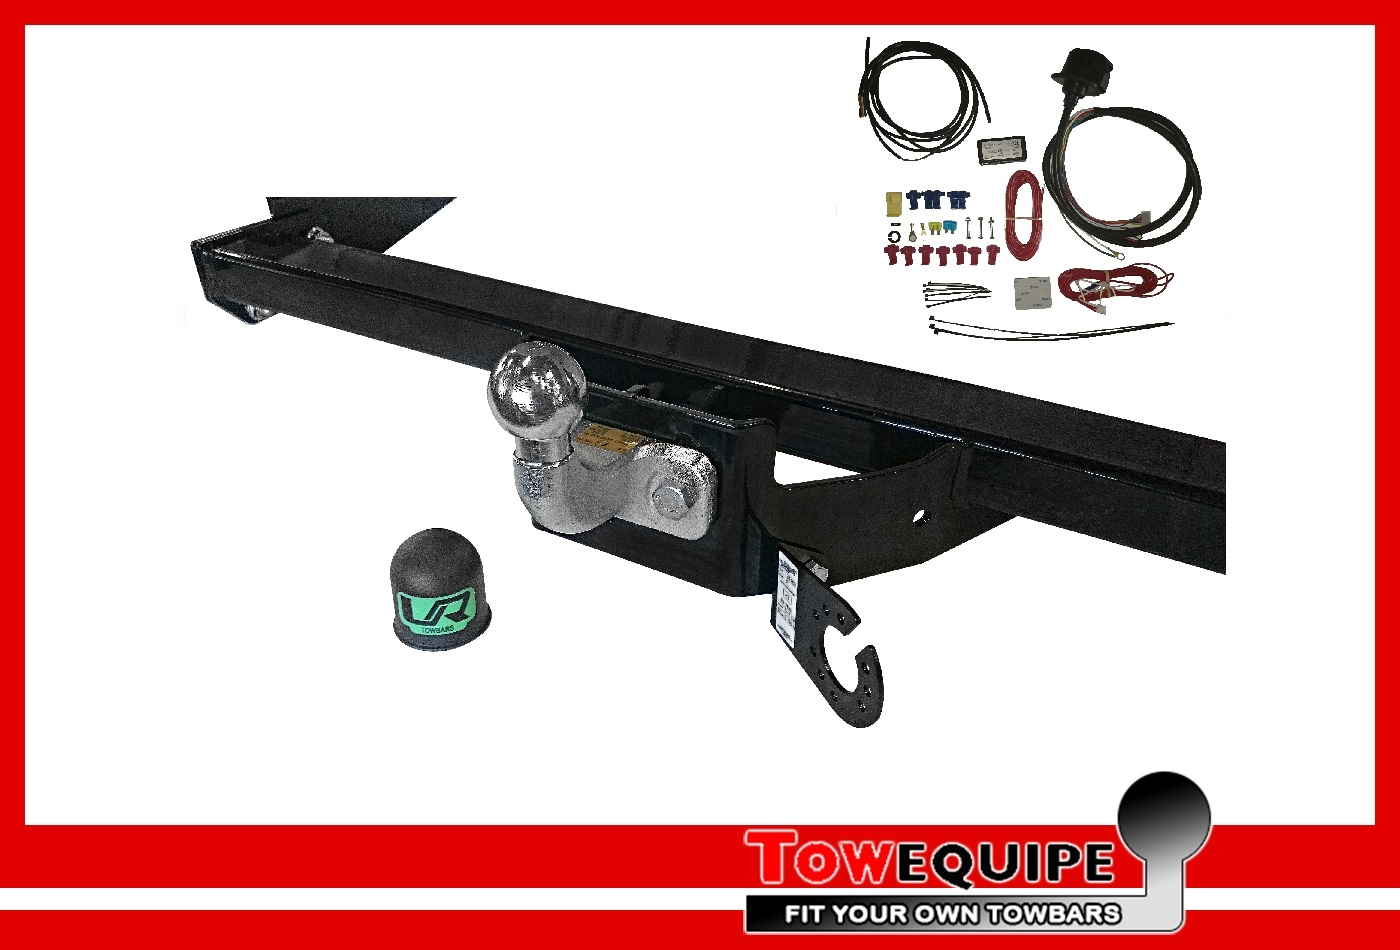 Fixed Flange Tow Bar Brink Towbar for Vauxhall Vivaro Van 2014 Onwards